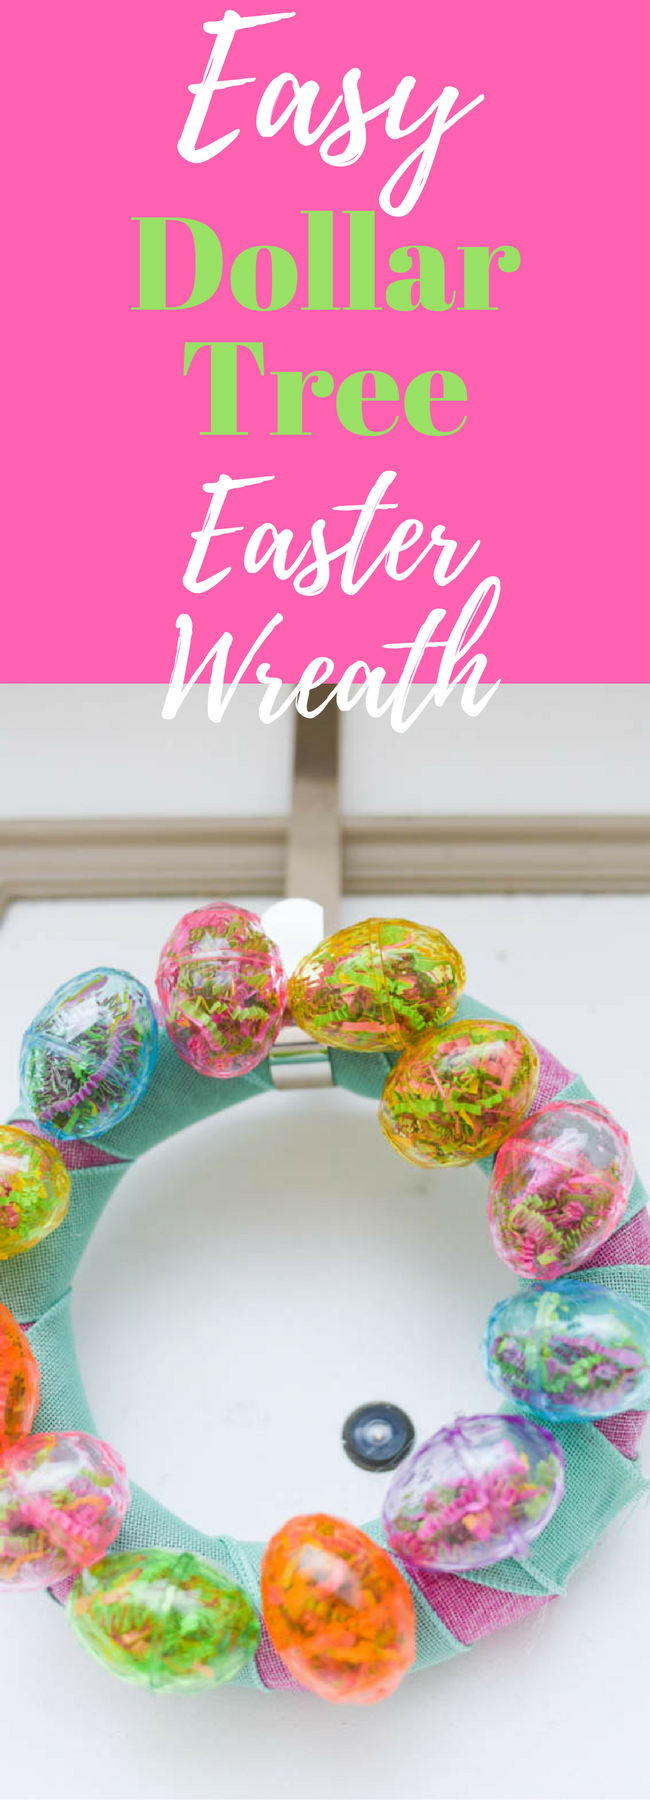 Dollar Tree Crafts / Dollar Store Crafts / Dollar Tree Wreath / Dollar Tree Easter Crafts / Dollar Tree Ideas / Easter Crafts / Easy Easter Crafts / Easter Wreath / Easter Decorations / Super Saturday /  via @clarkscondensed